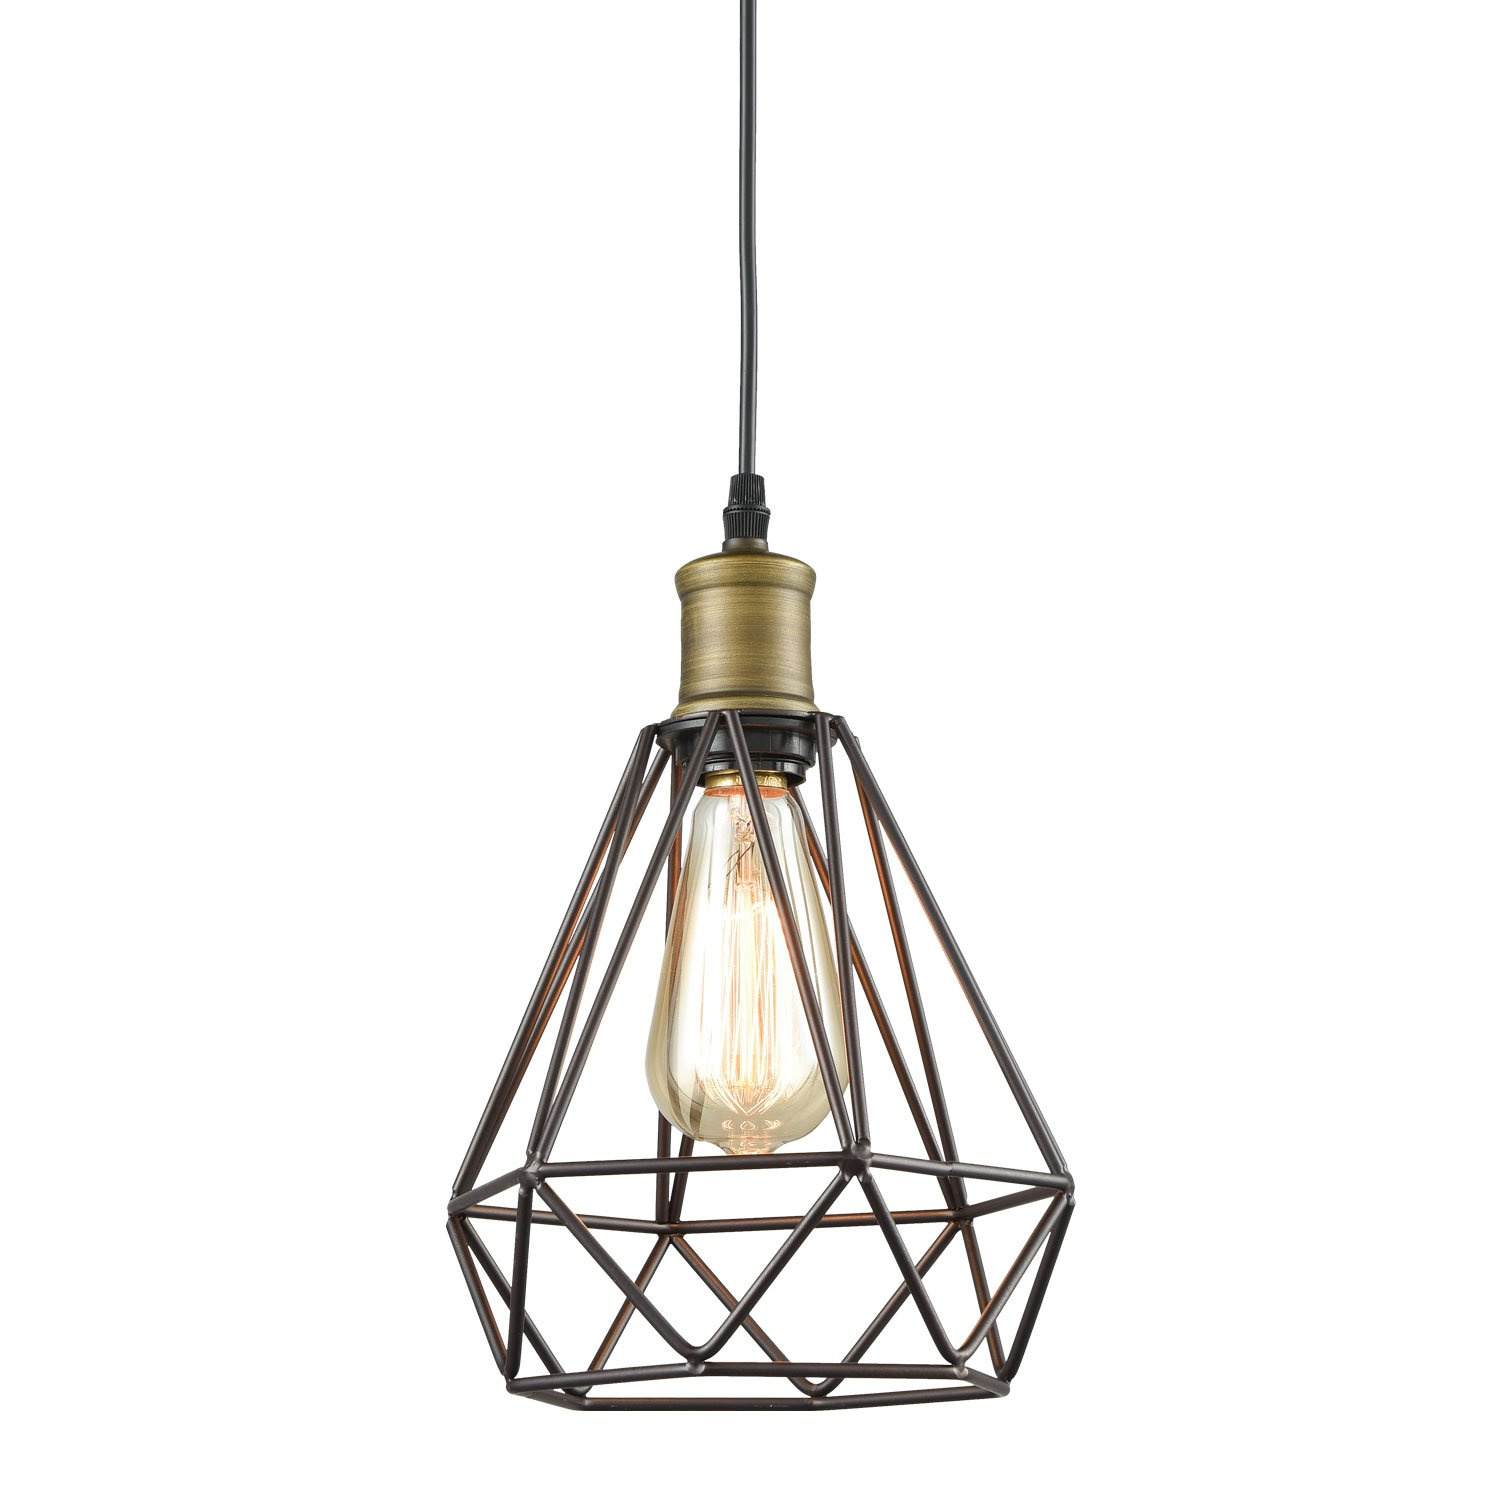 Yobo lighting vintage oil rubbed bronze polygon wire pendant light yobo lighting vintage oil rubbed bronze polygon wire pendant light art deco amazon aloadofball Gallery